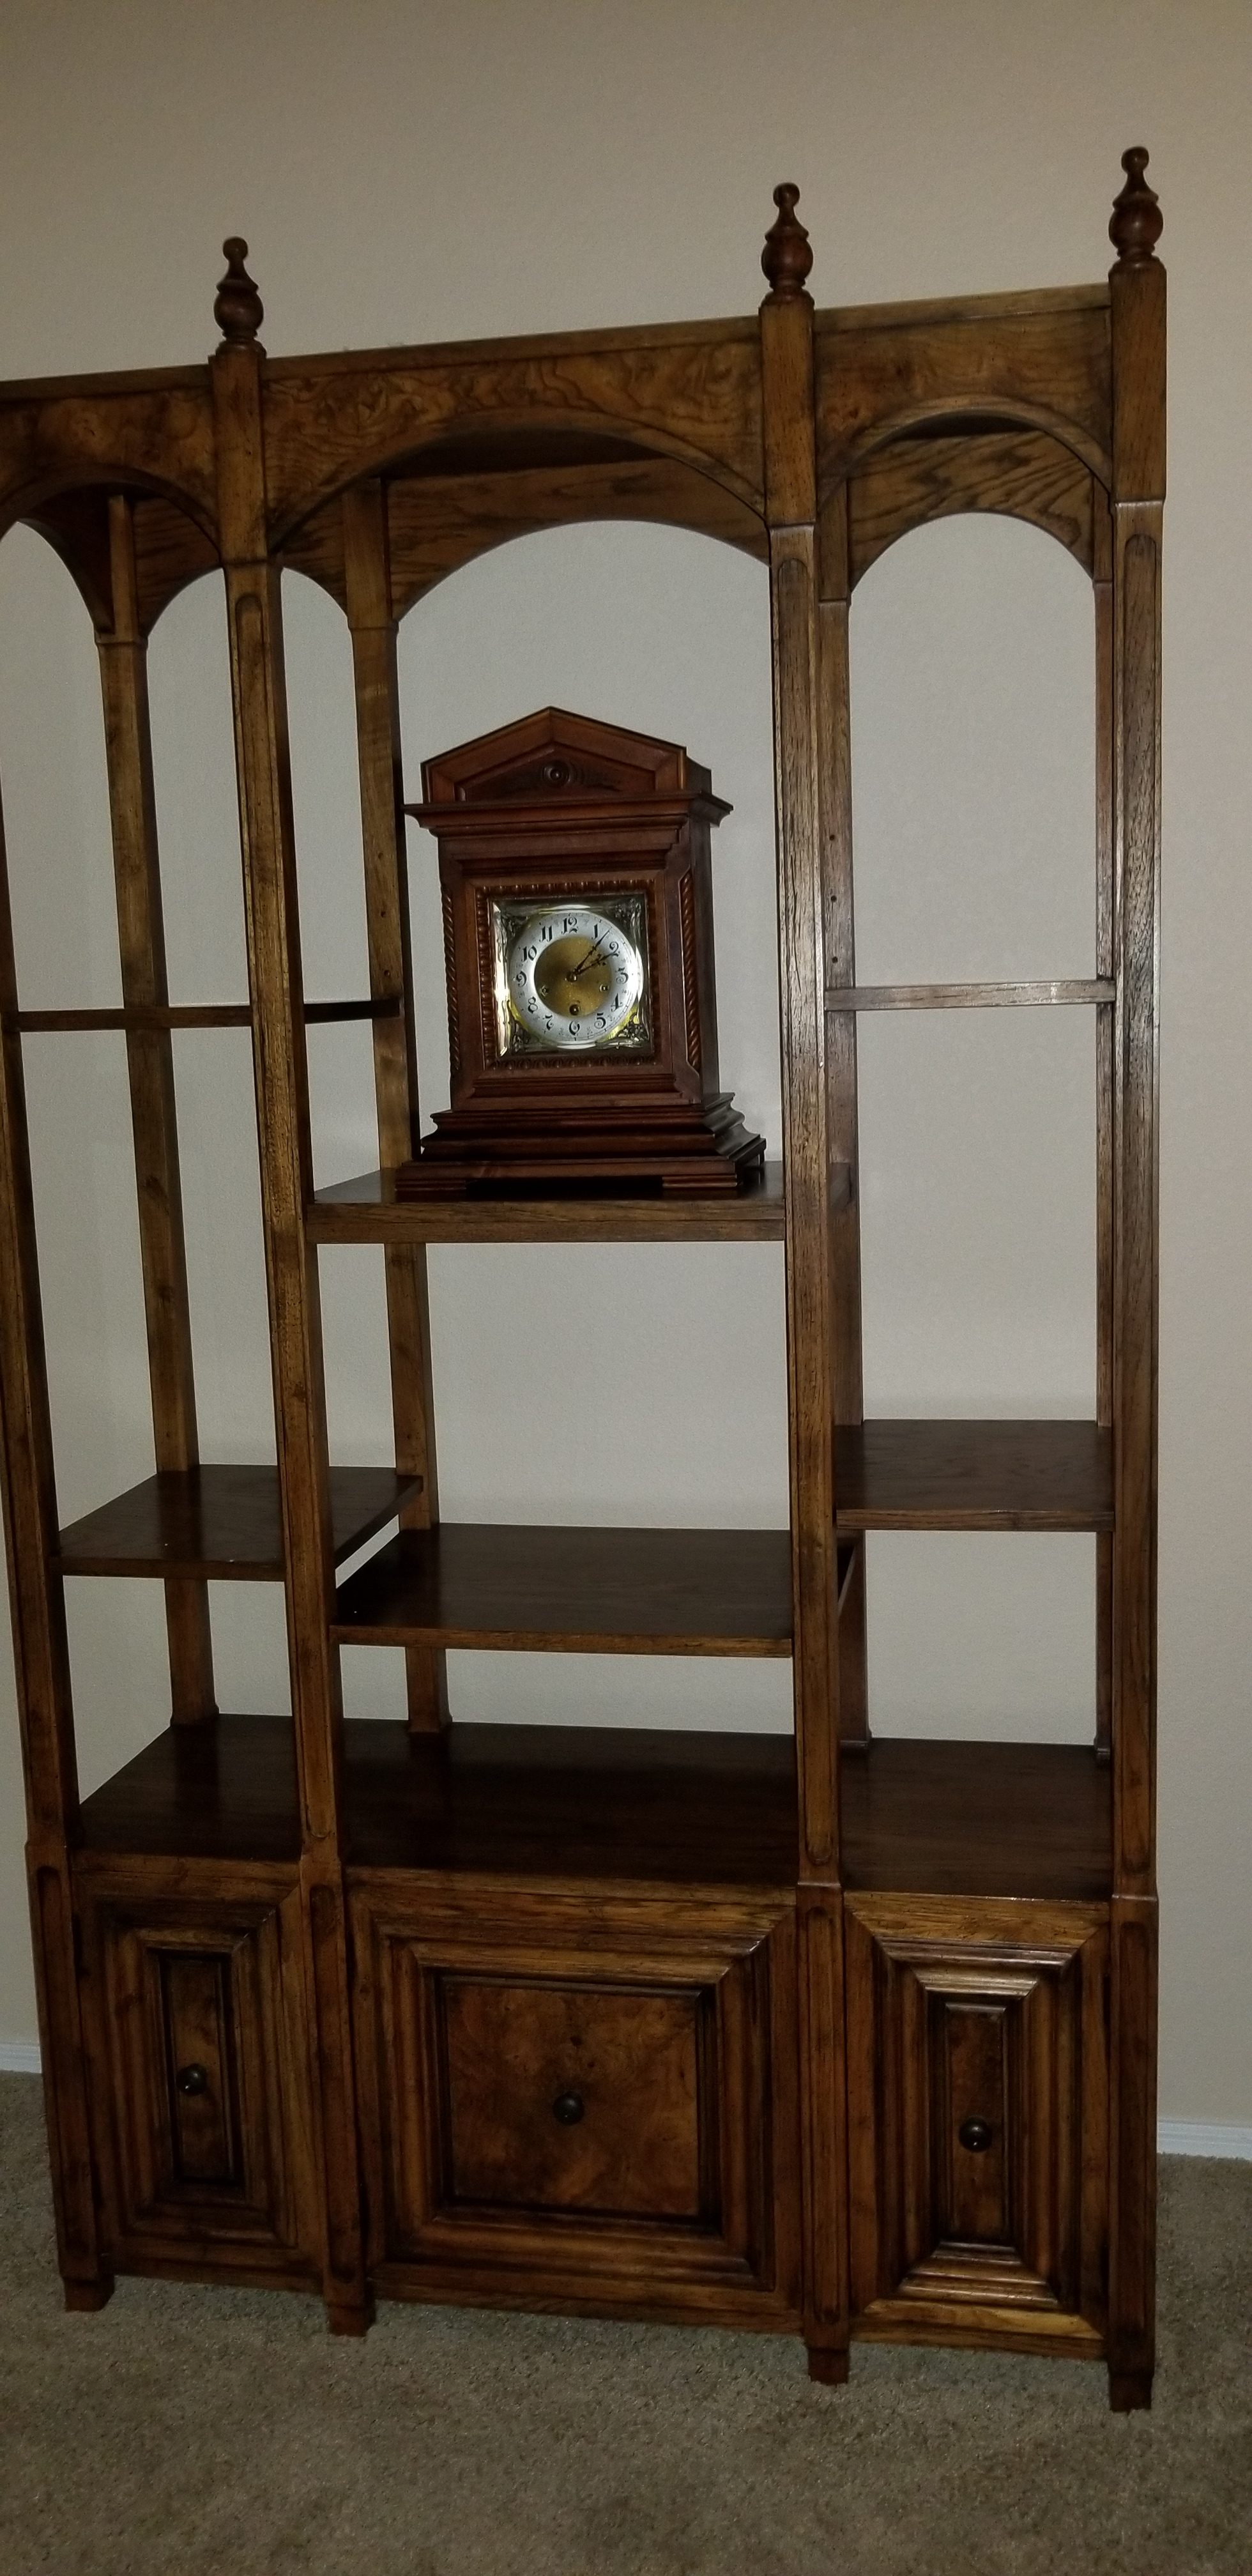 Etagere/display cabinet